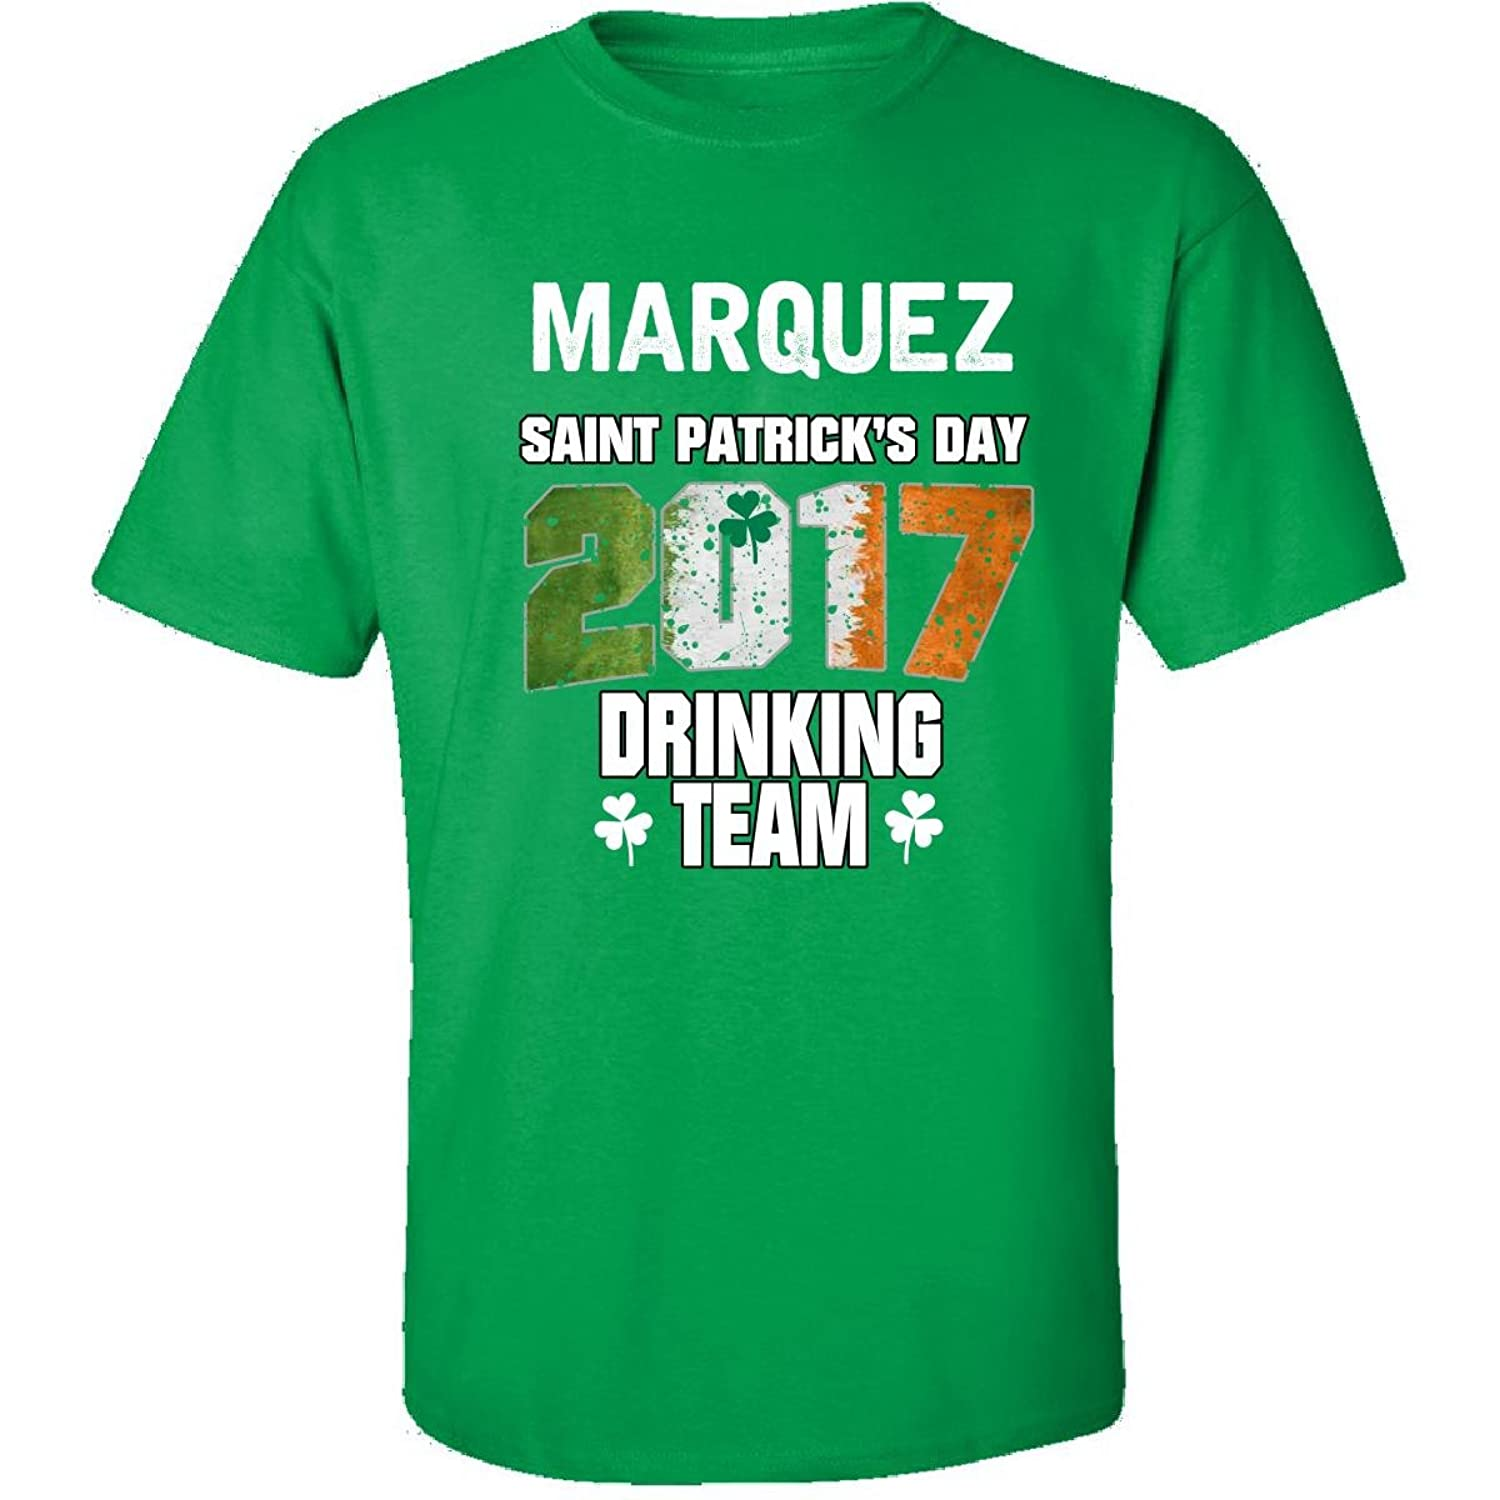 Marquez Irish St Patricks Day 2017 Drinking Team - Adult Shirt